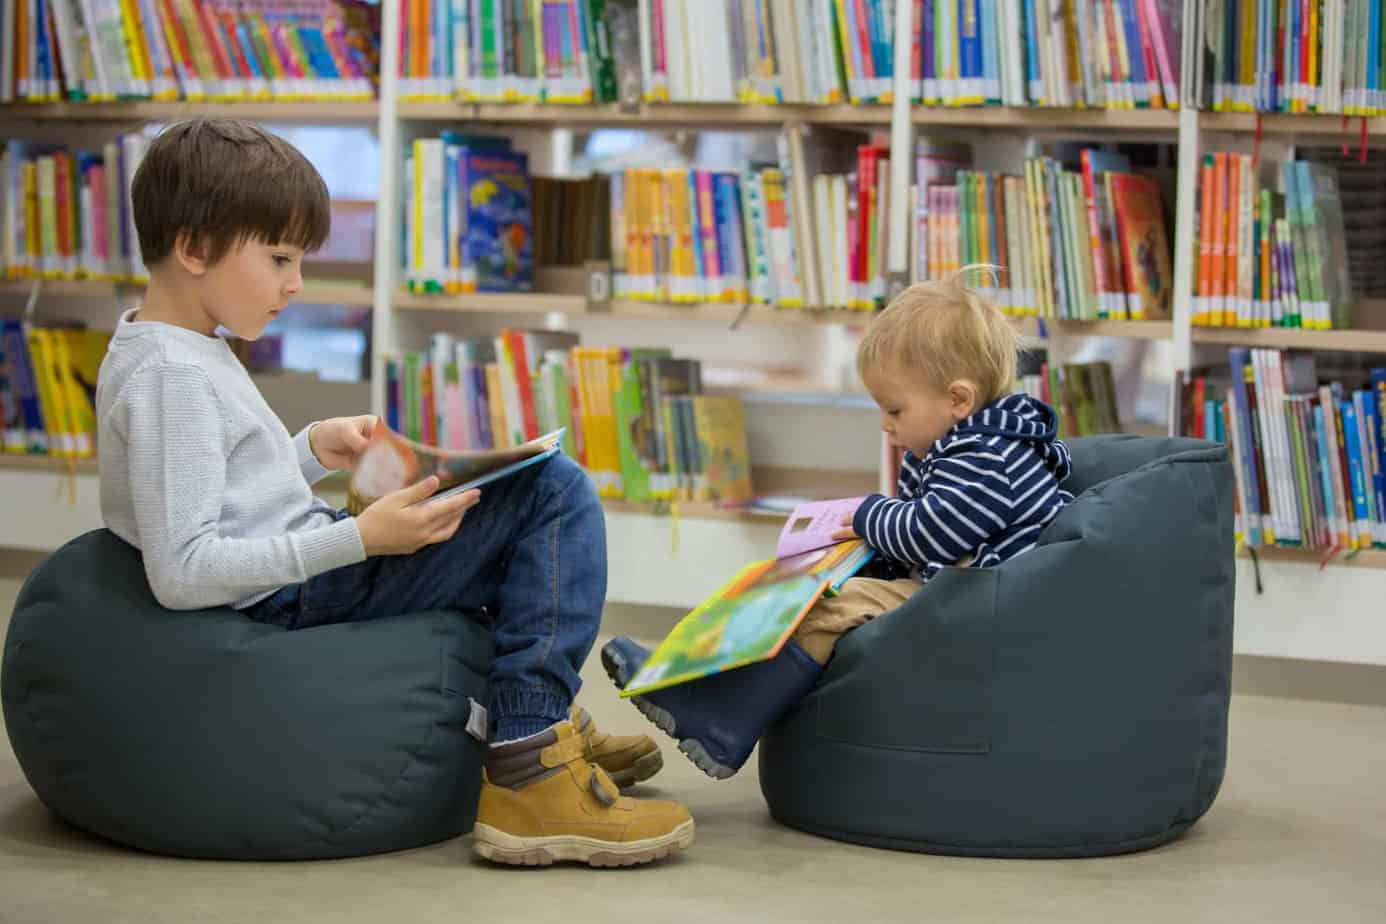 list for all of the best reading books for kids. Not only am I sharing a variety of books along with their reading level, but there is something for everyone; from preschoolers to kids in the 5th grade!